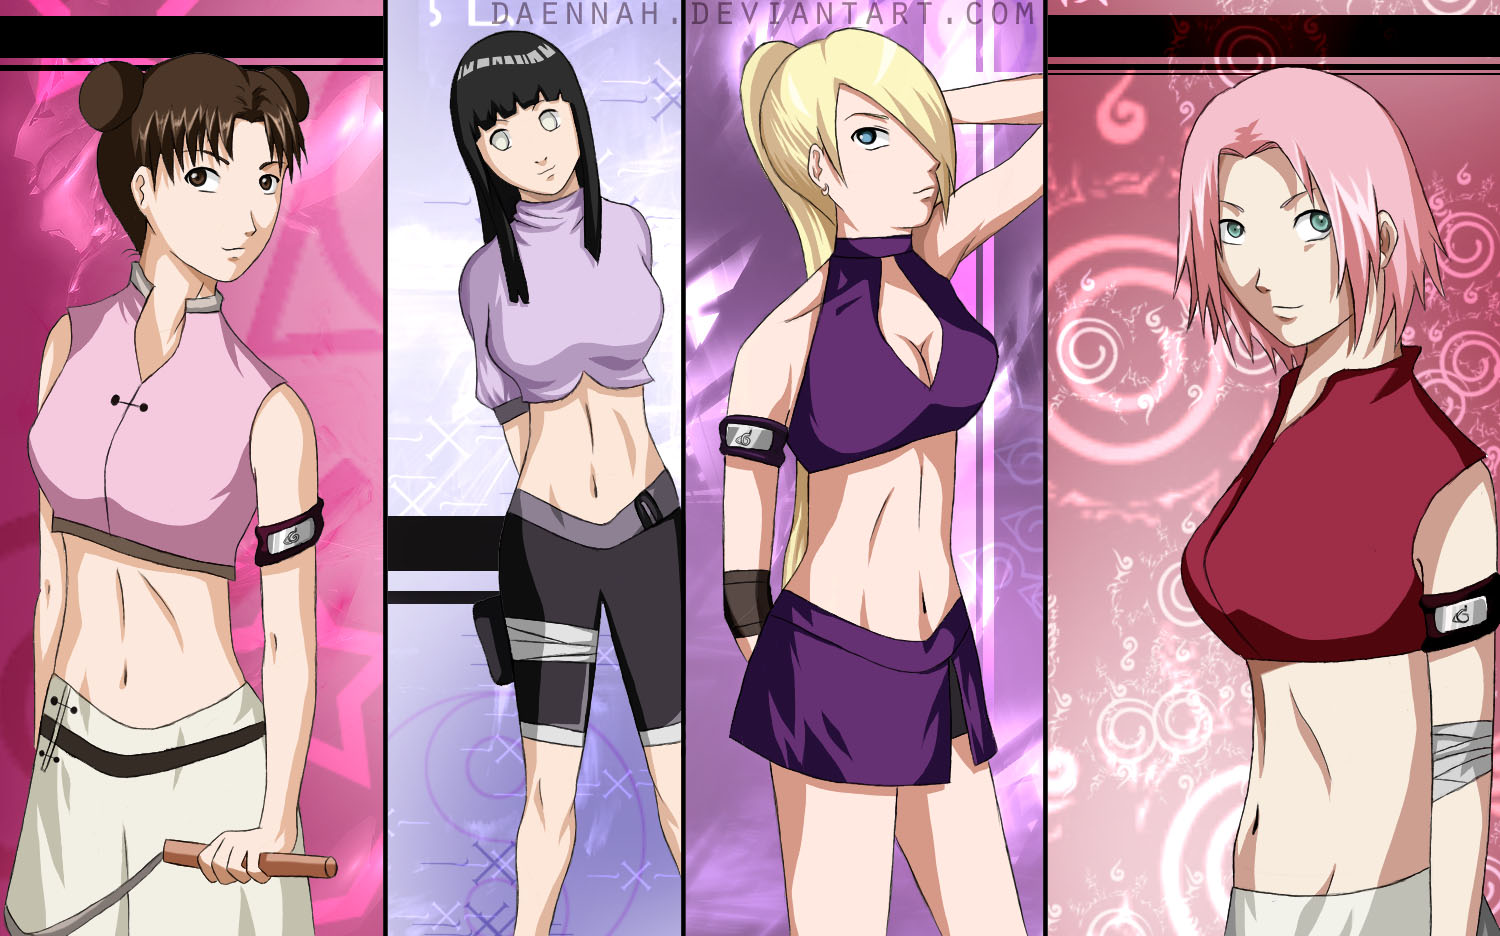 صور بنات ناروتو Naruto_girls_colored_by_daennah